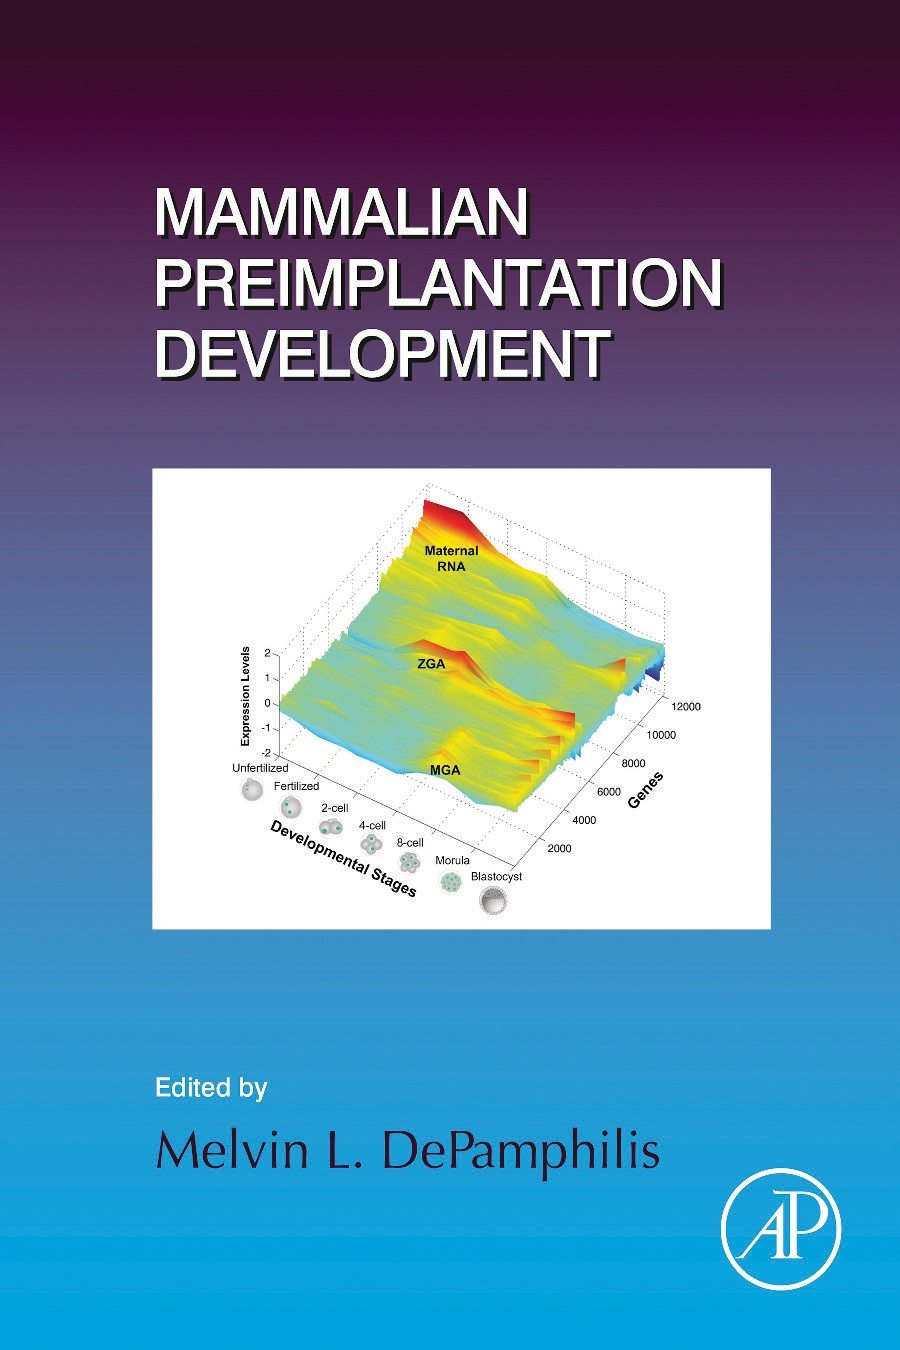 Mammalian Preimplantation Development